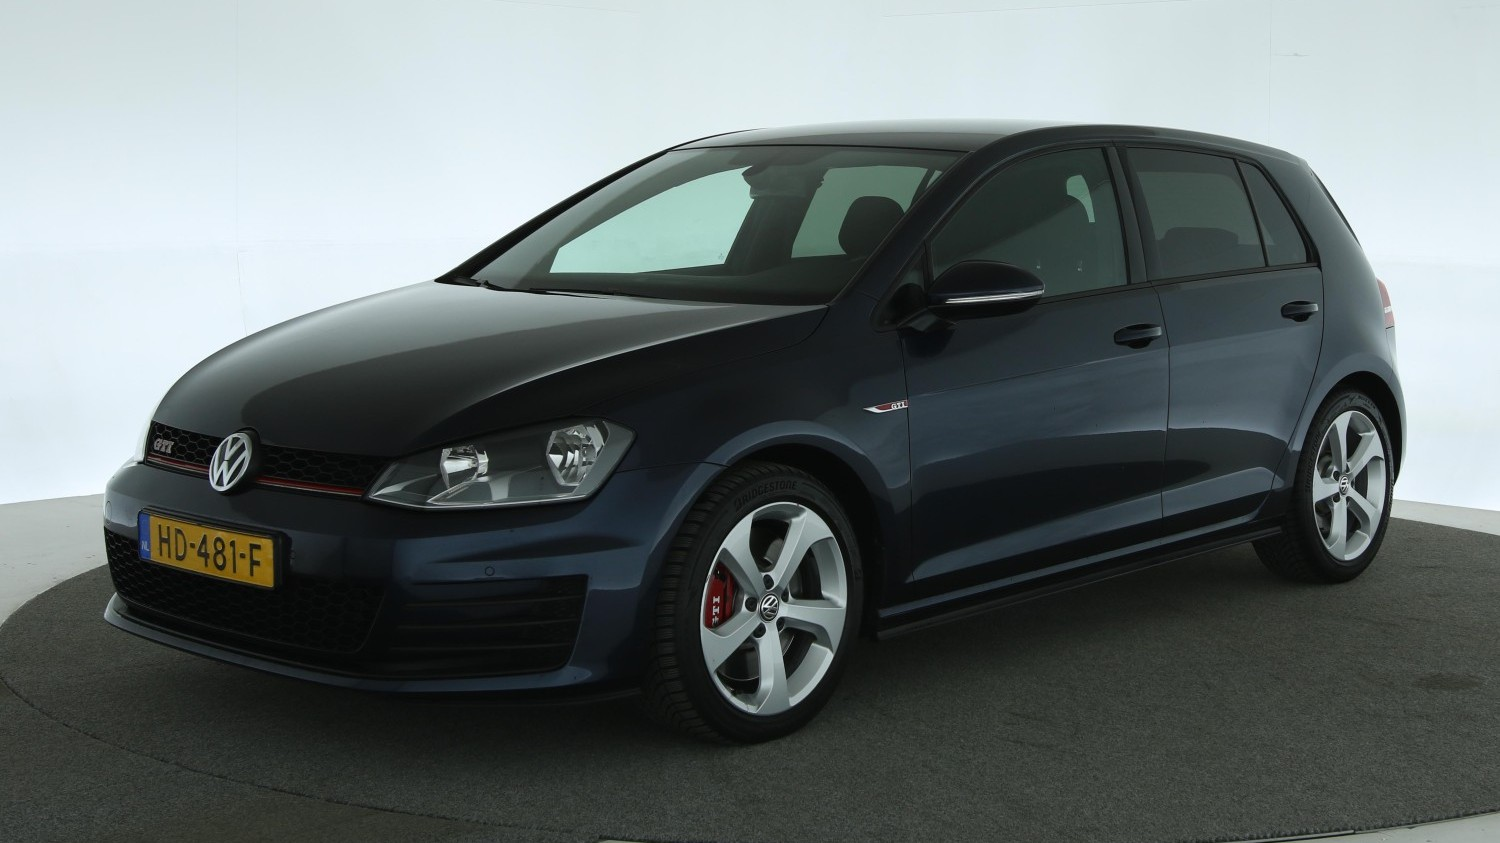 Volkswagen Golf Hatchback 2015 HD-481-F 1